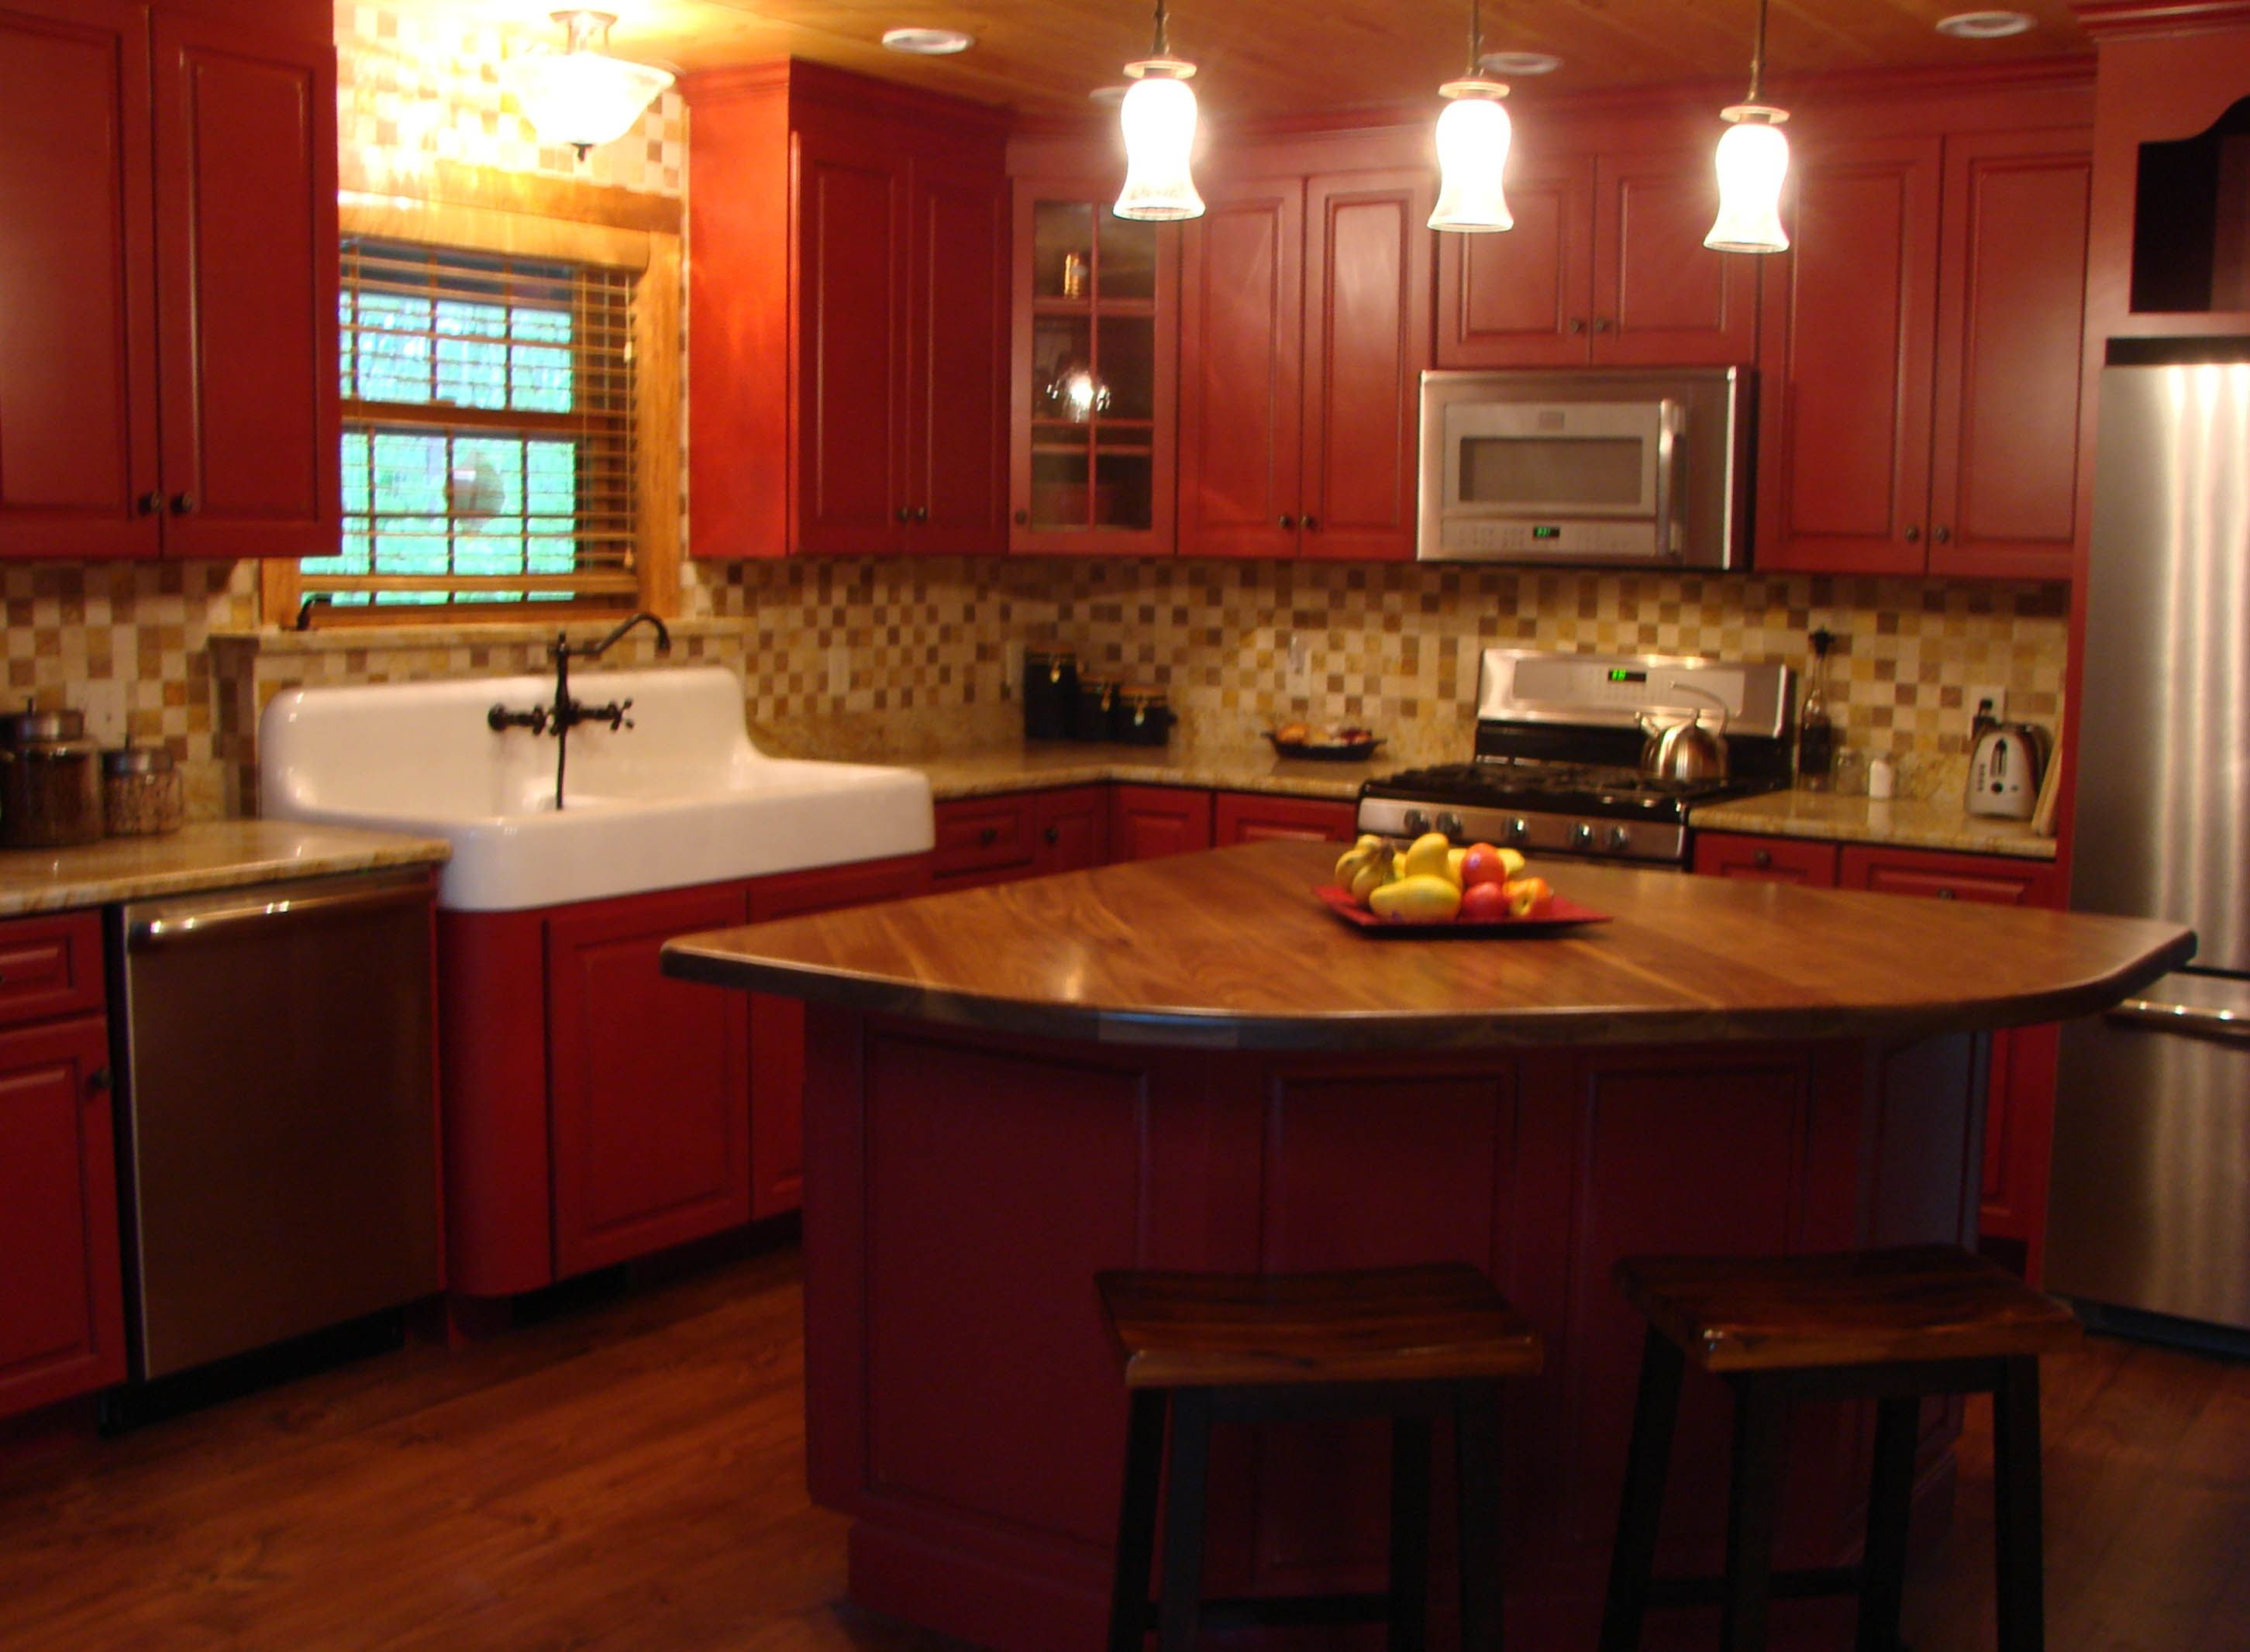 Custom Kitchen Painted Red Cabinets With Distressing And Wear Through Finish Black Walnut Isl Distressed Cabinets Kitchen Design Chalk Paint Kitchen Cabinets